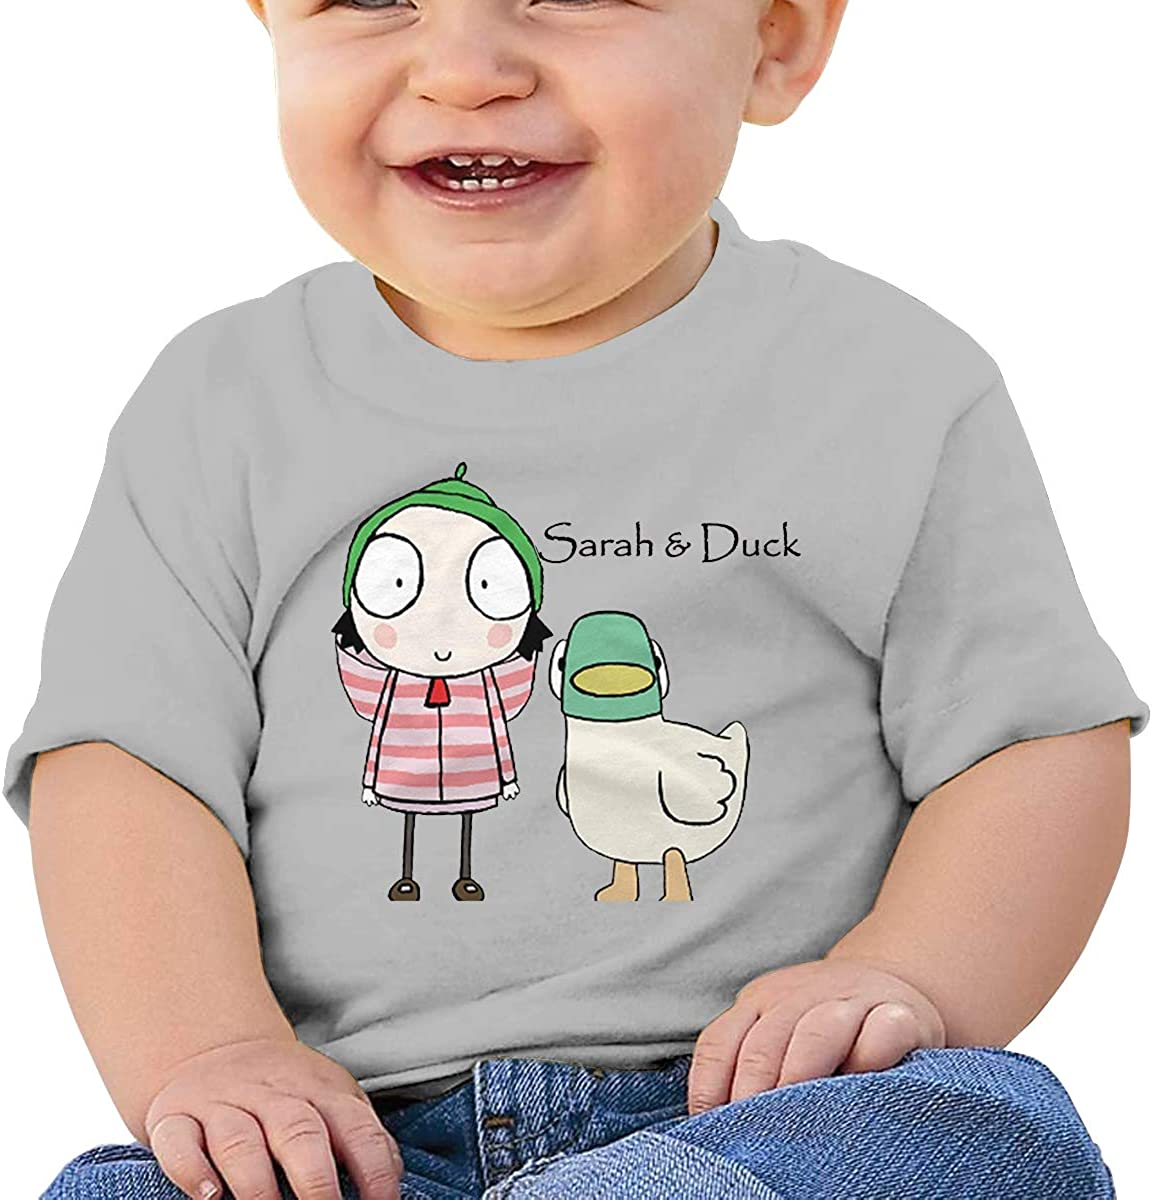 DONGLY 6-24 Month Baby T-Shirt Sarah /& Duck Nordic Winter Personality Wild Gray